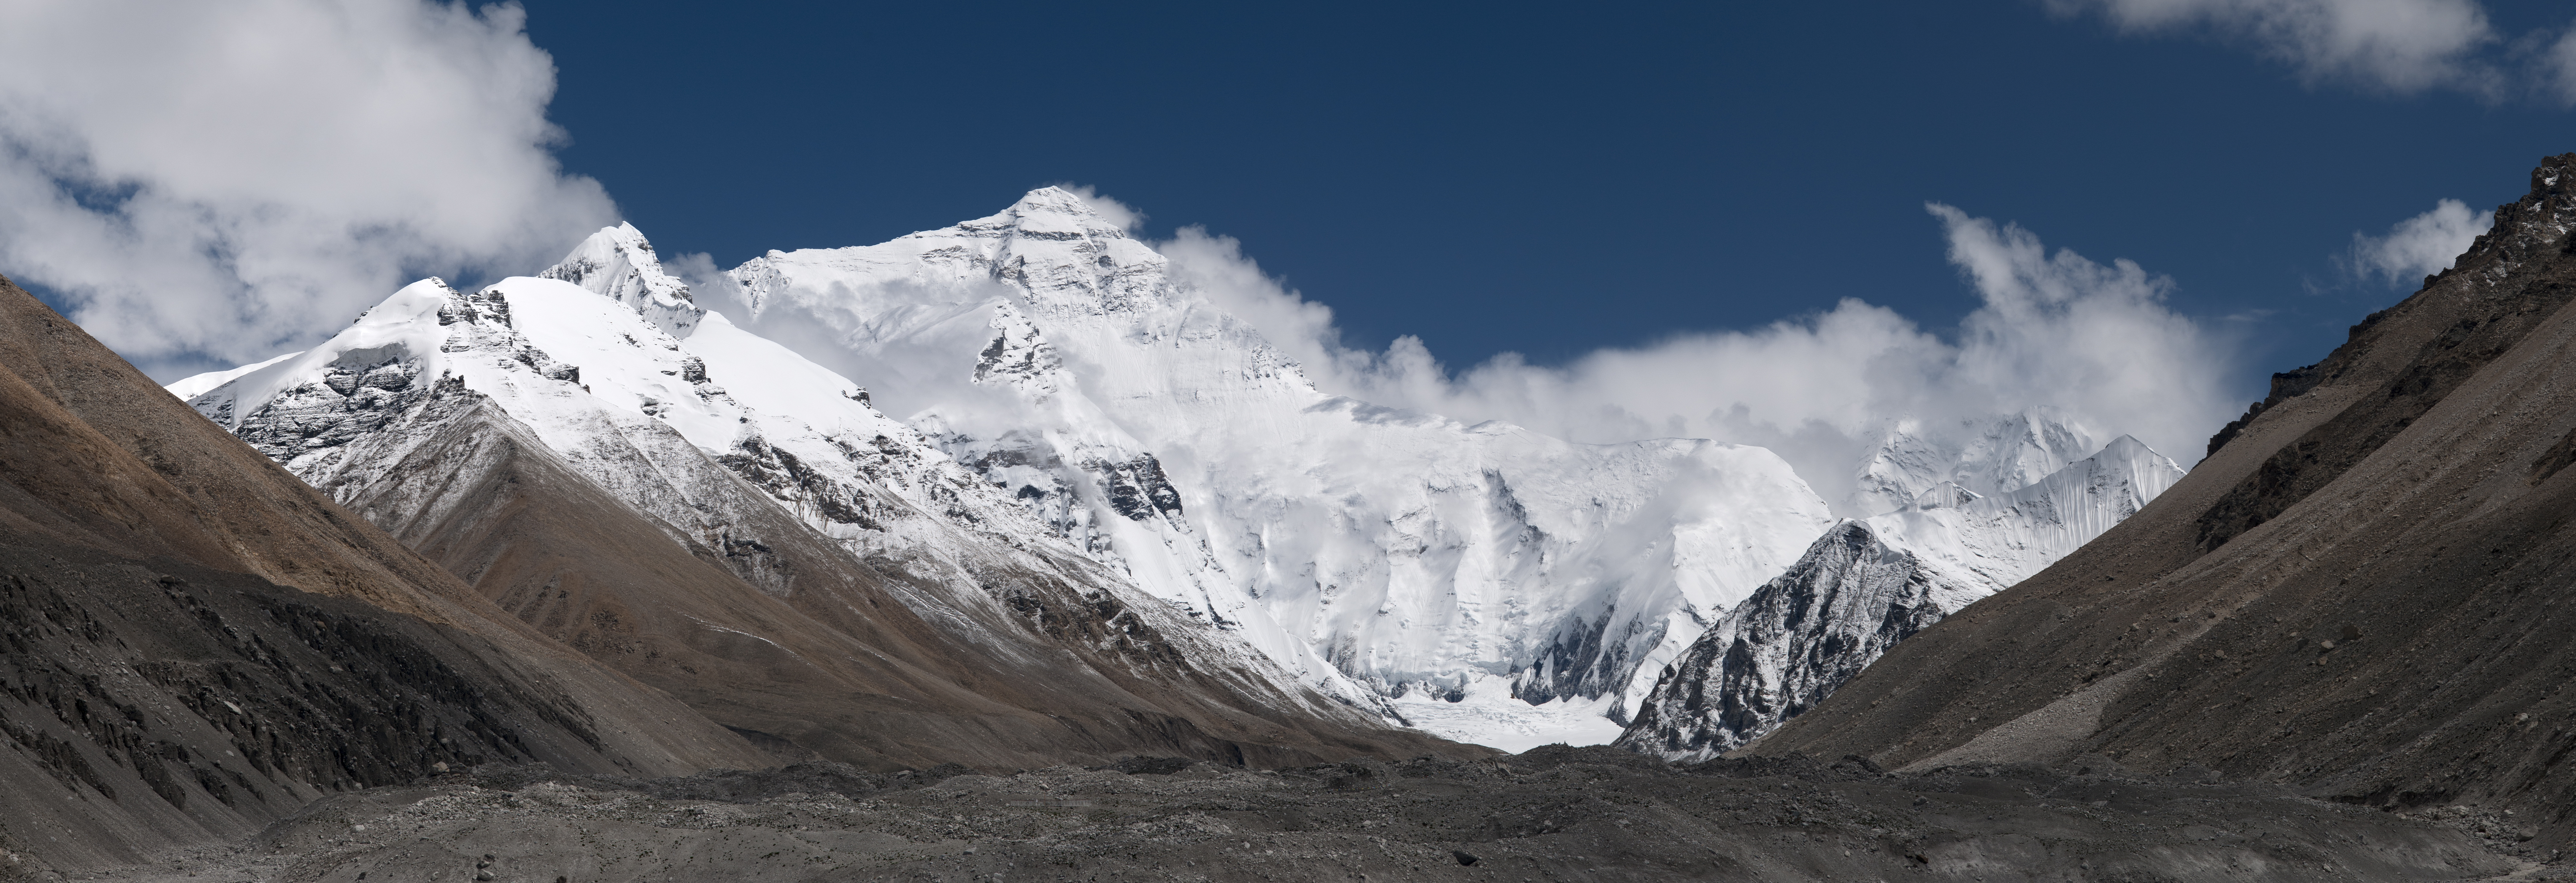 20110810_North_Face_of_Everest_Tibet_China_Panoramic